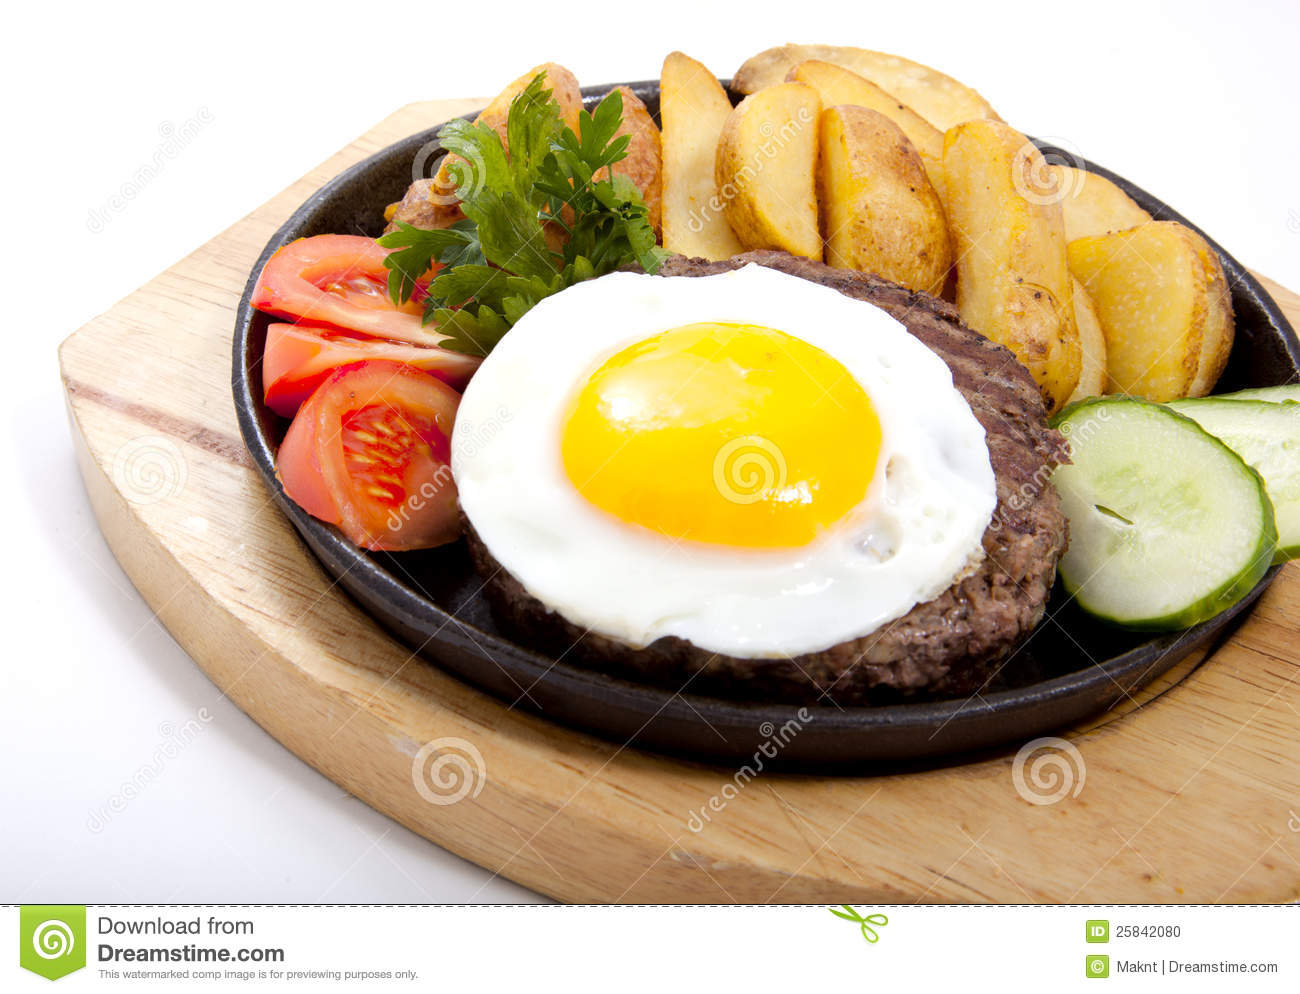 Photo of steak with potatoes and egg in a frying pan.